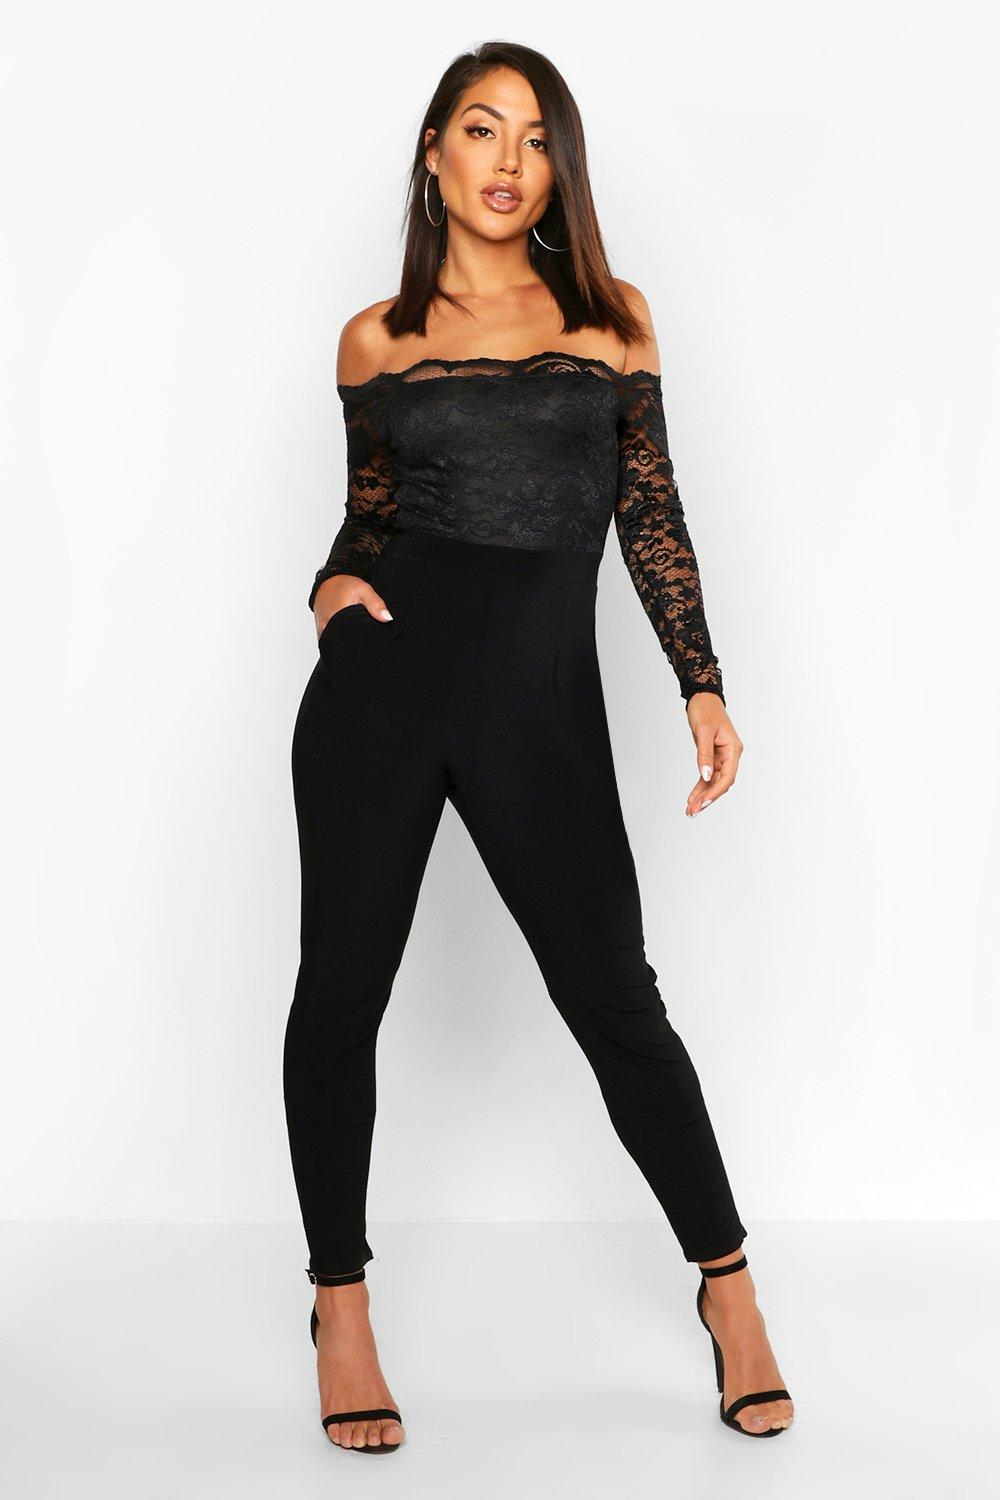 Shop Jumpsuits | Jumpsuits For Women | boohoo